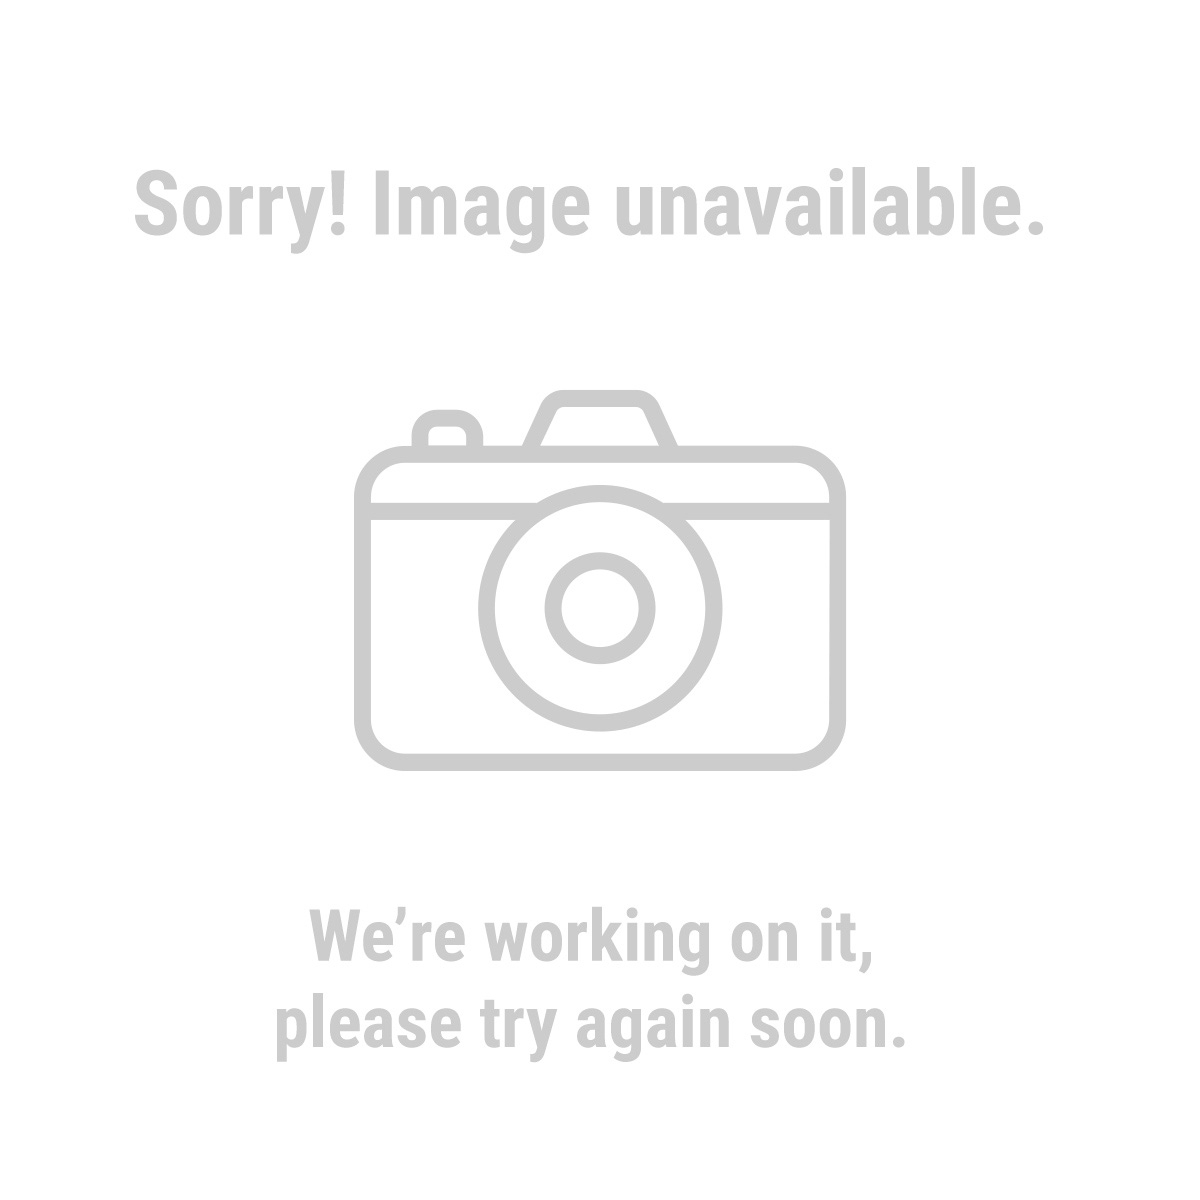 HFT® 42367 Super Glue, 3 Pack